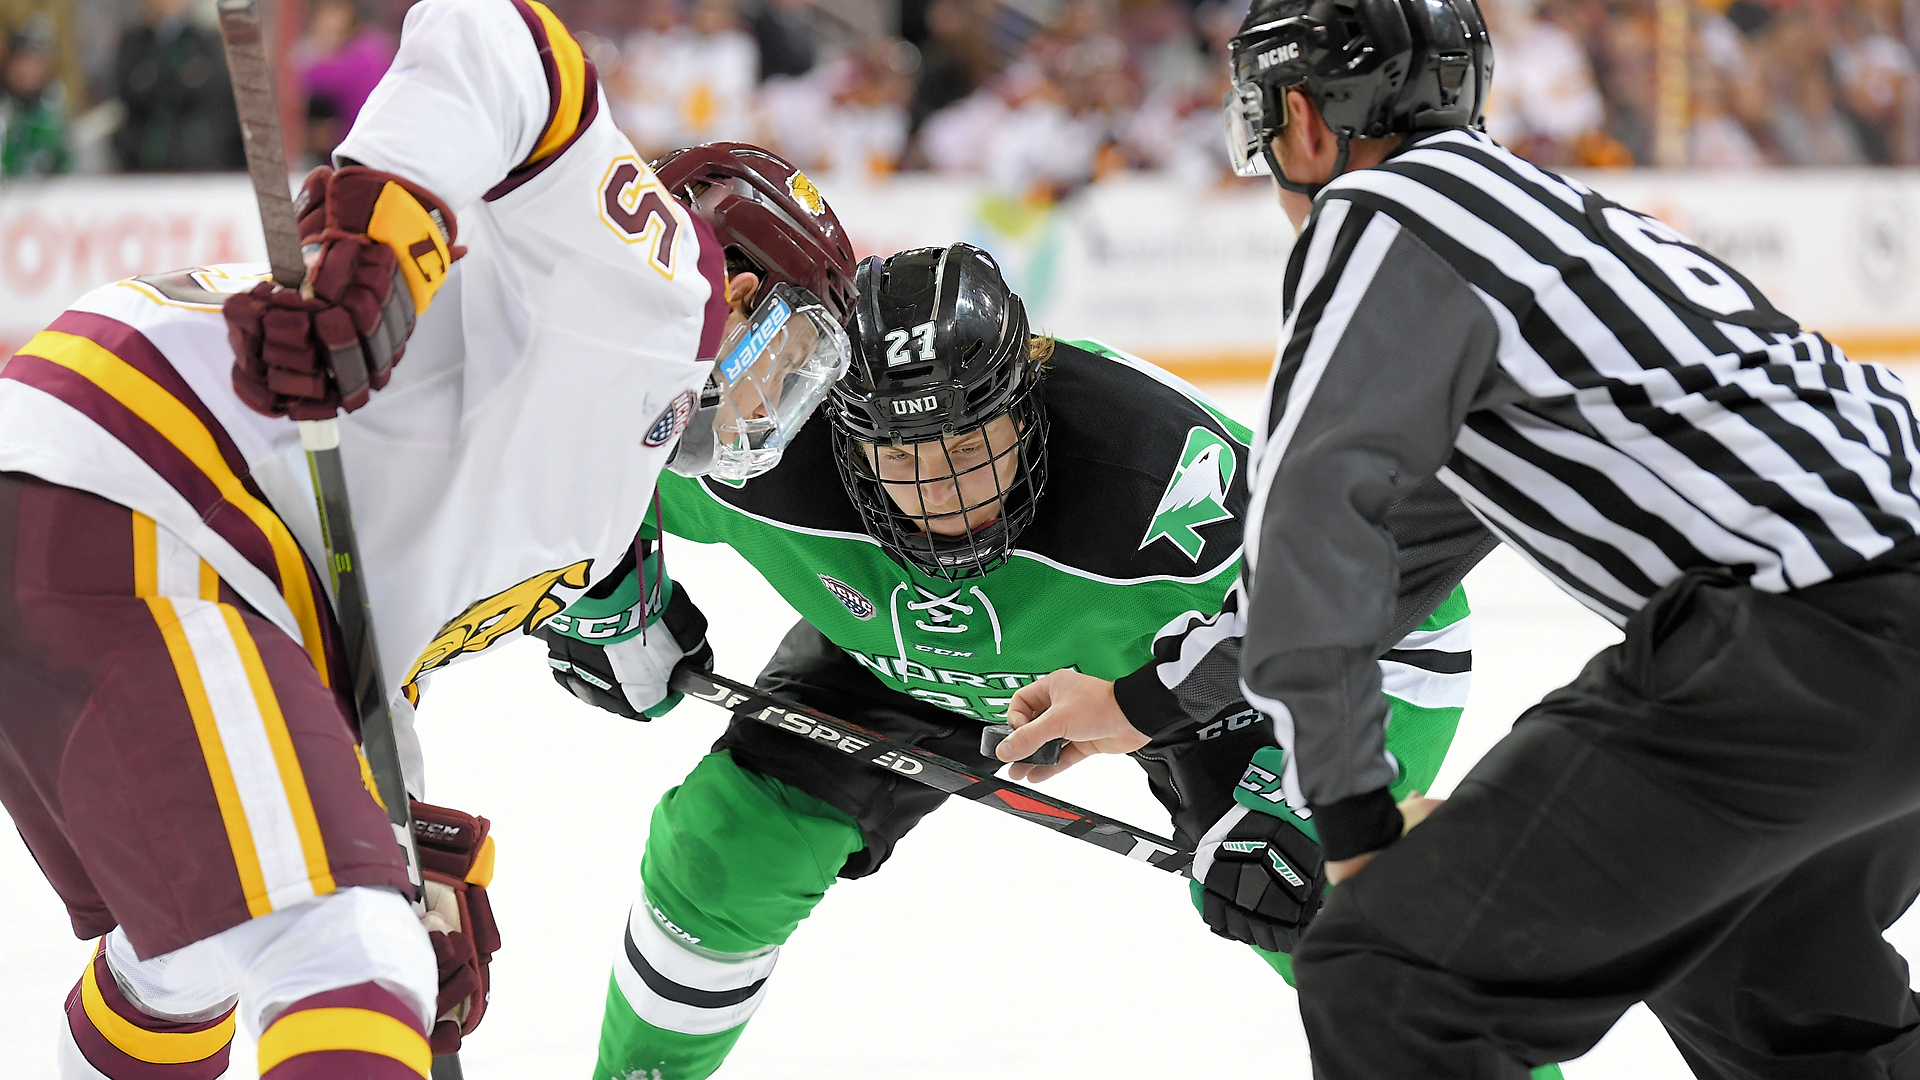 ludvig hoff - men's hockey - university of north dakota athletics